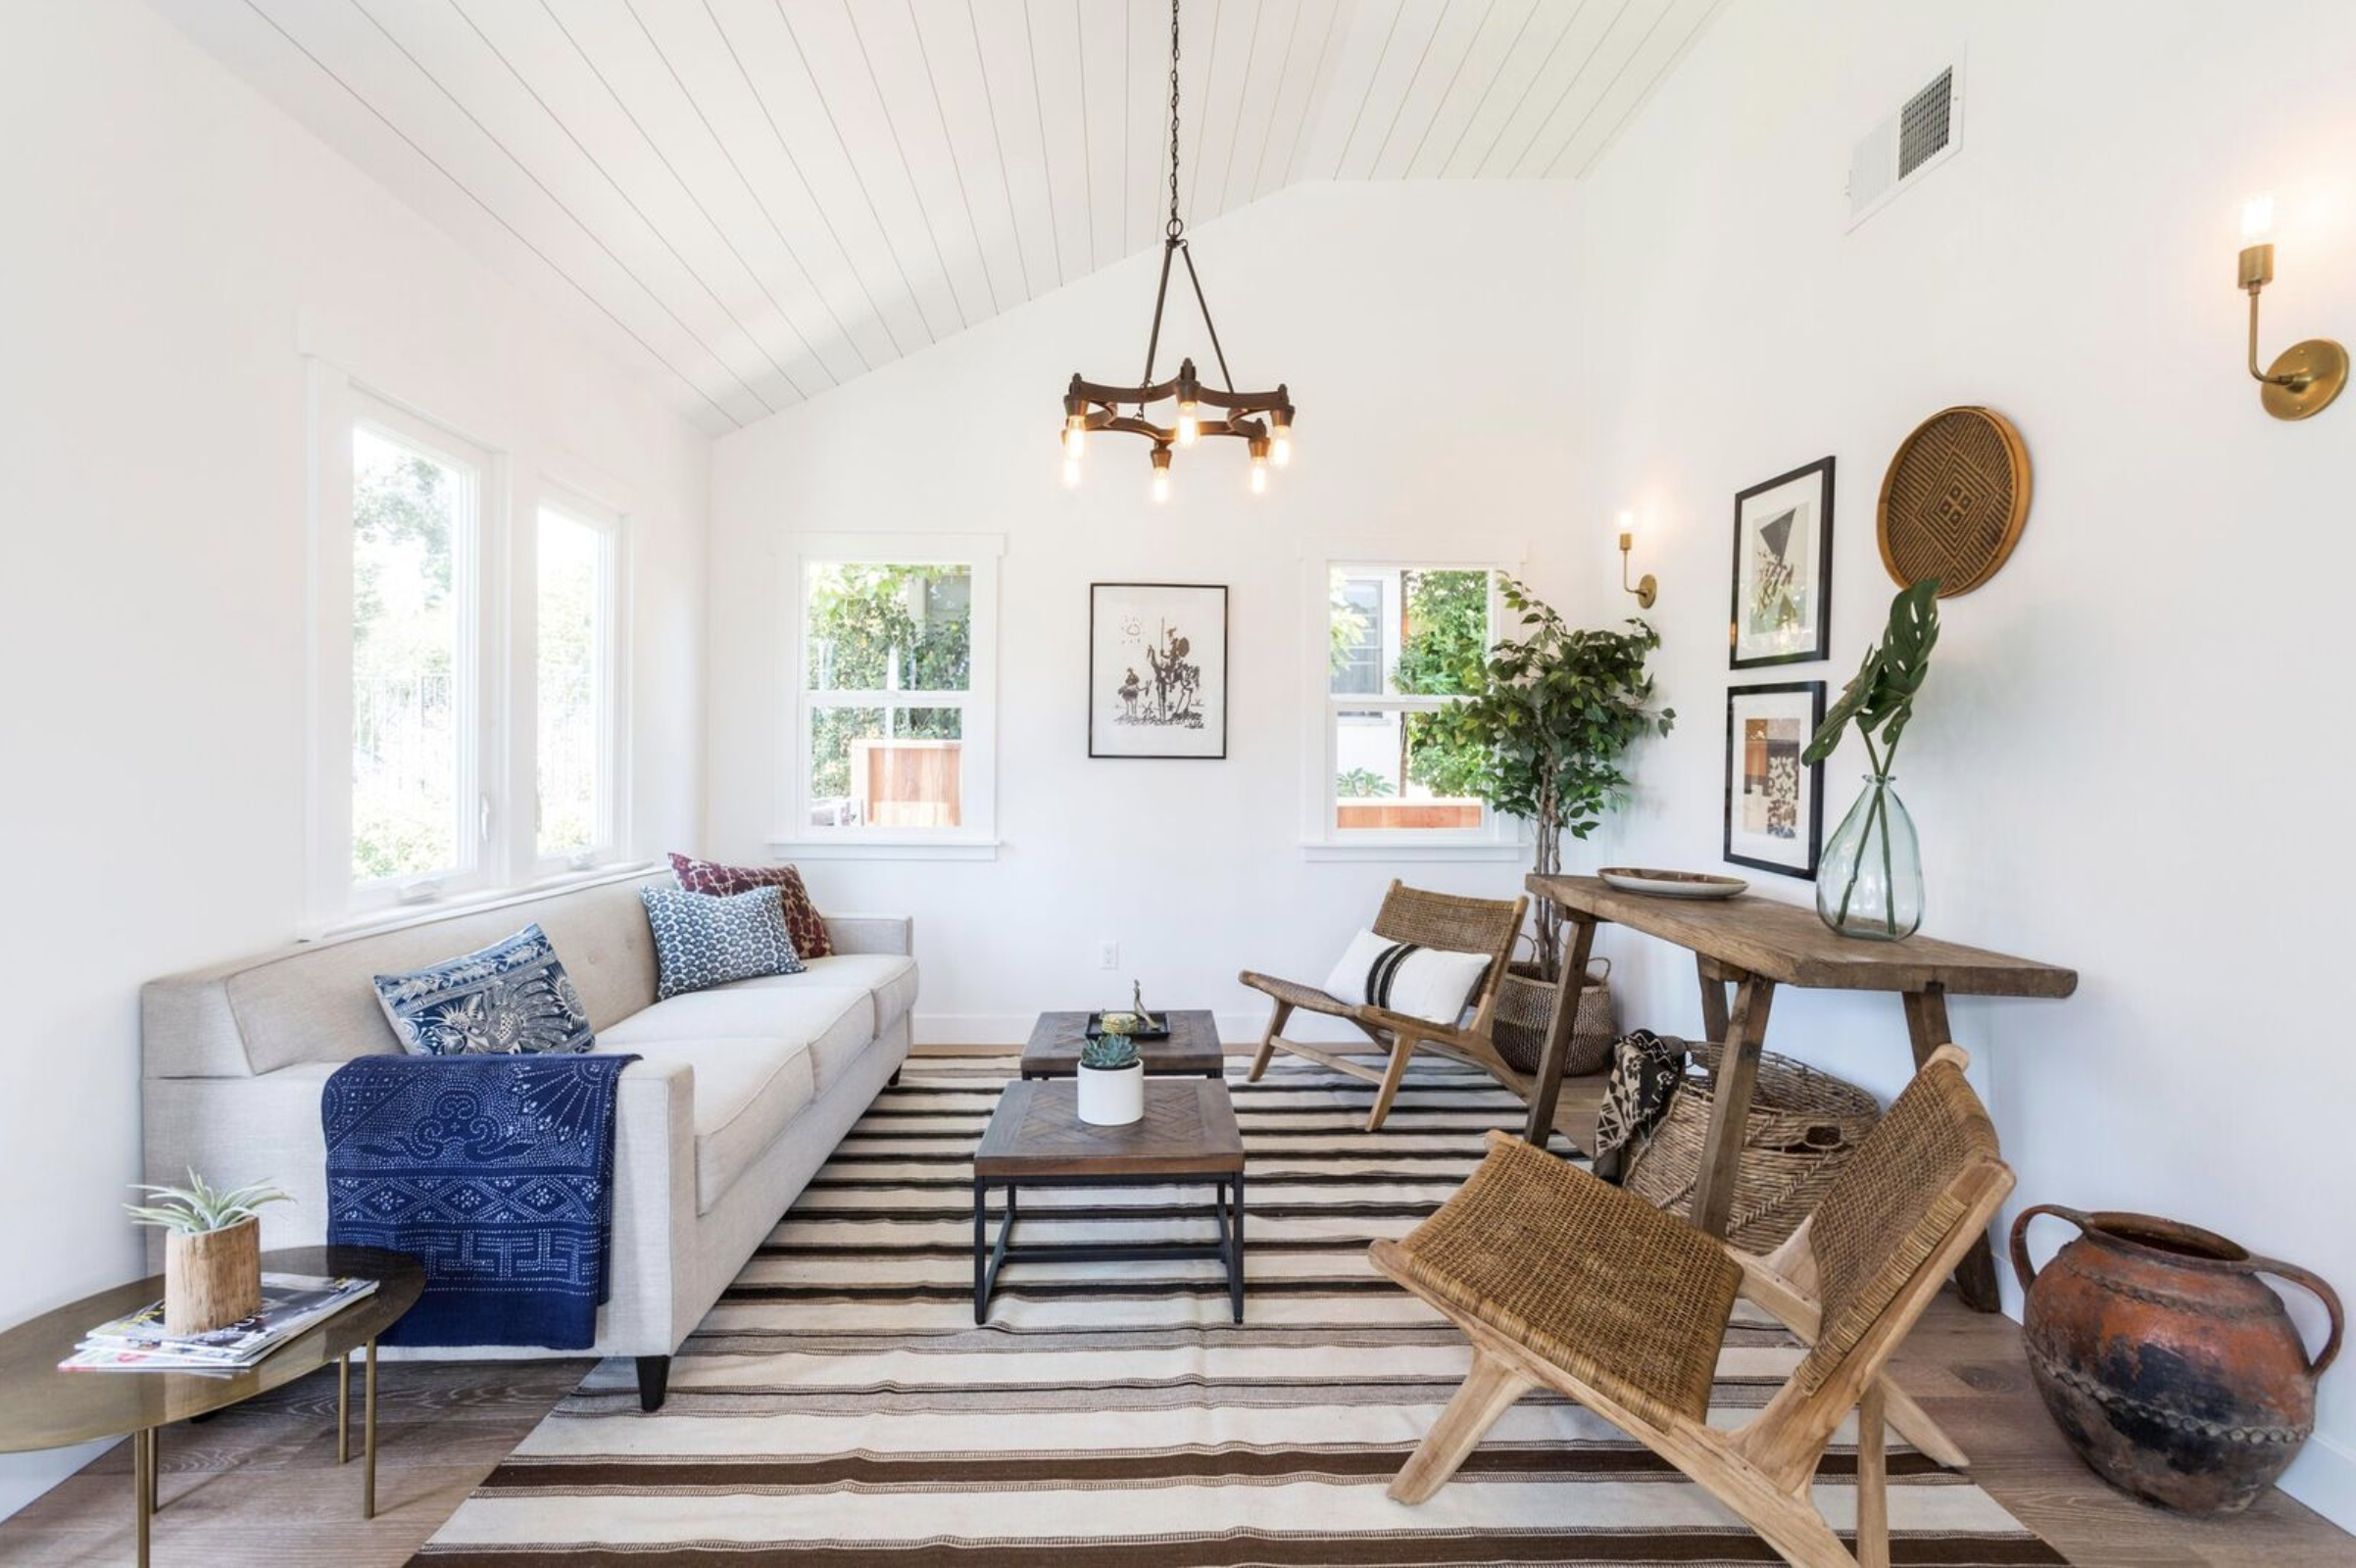 9 Staging Ideas to Help a Home Seem More Appealing